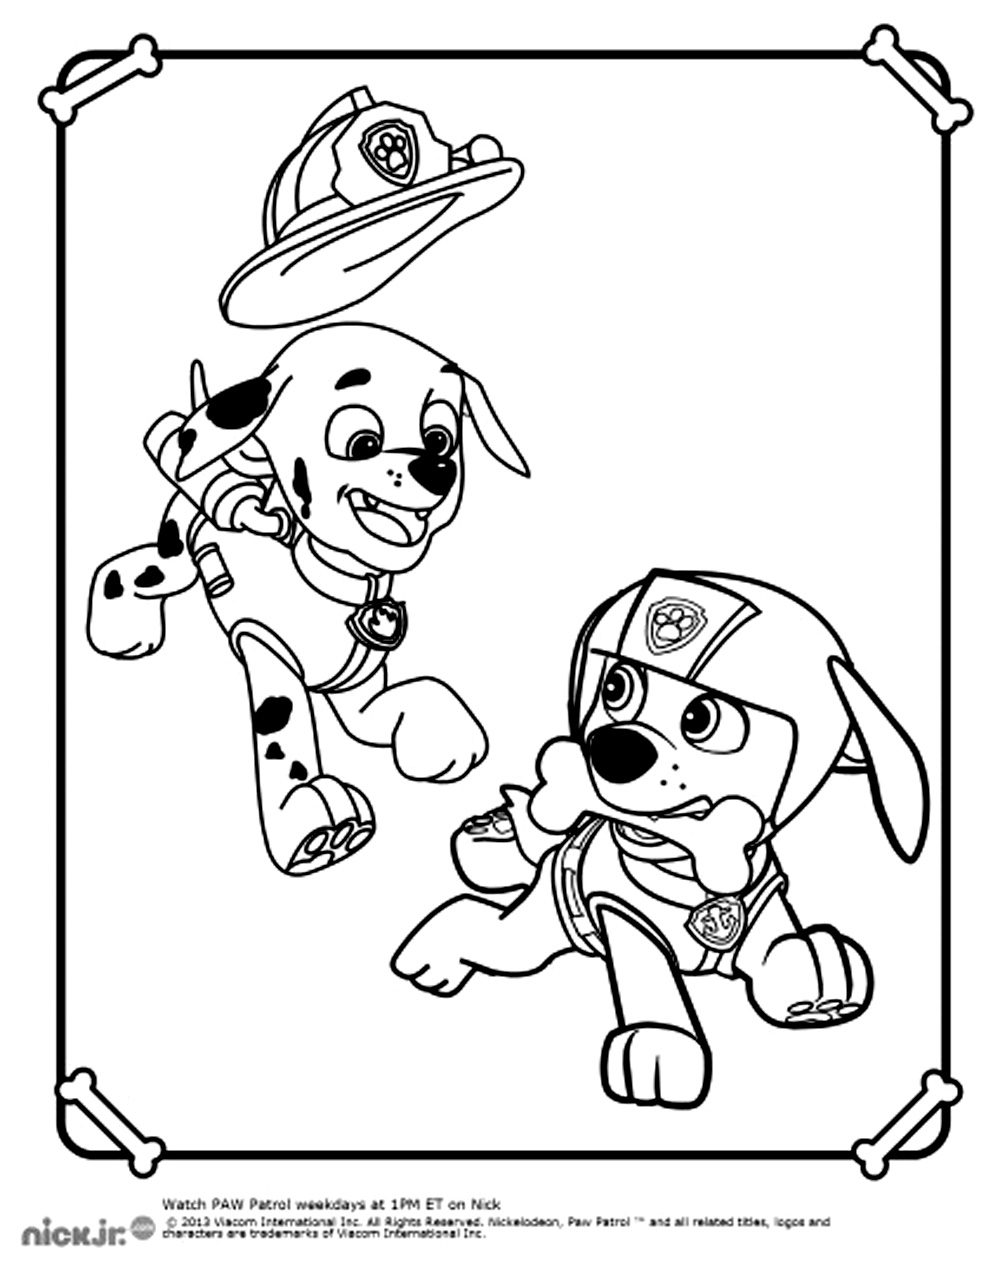 Free Paw Patrol coloring page to download, for children